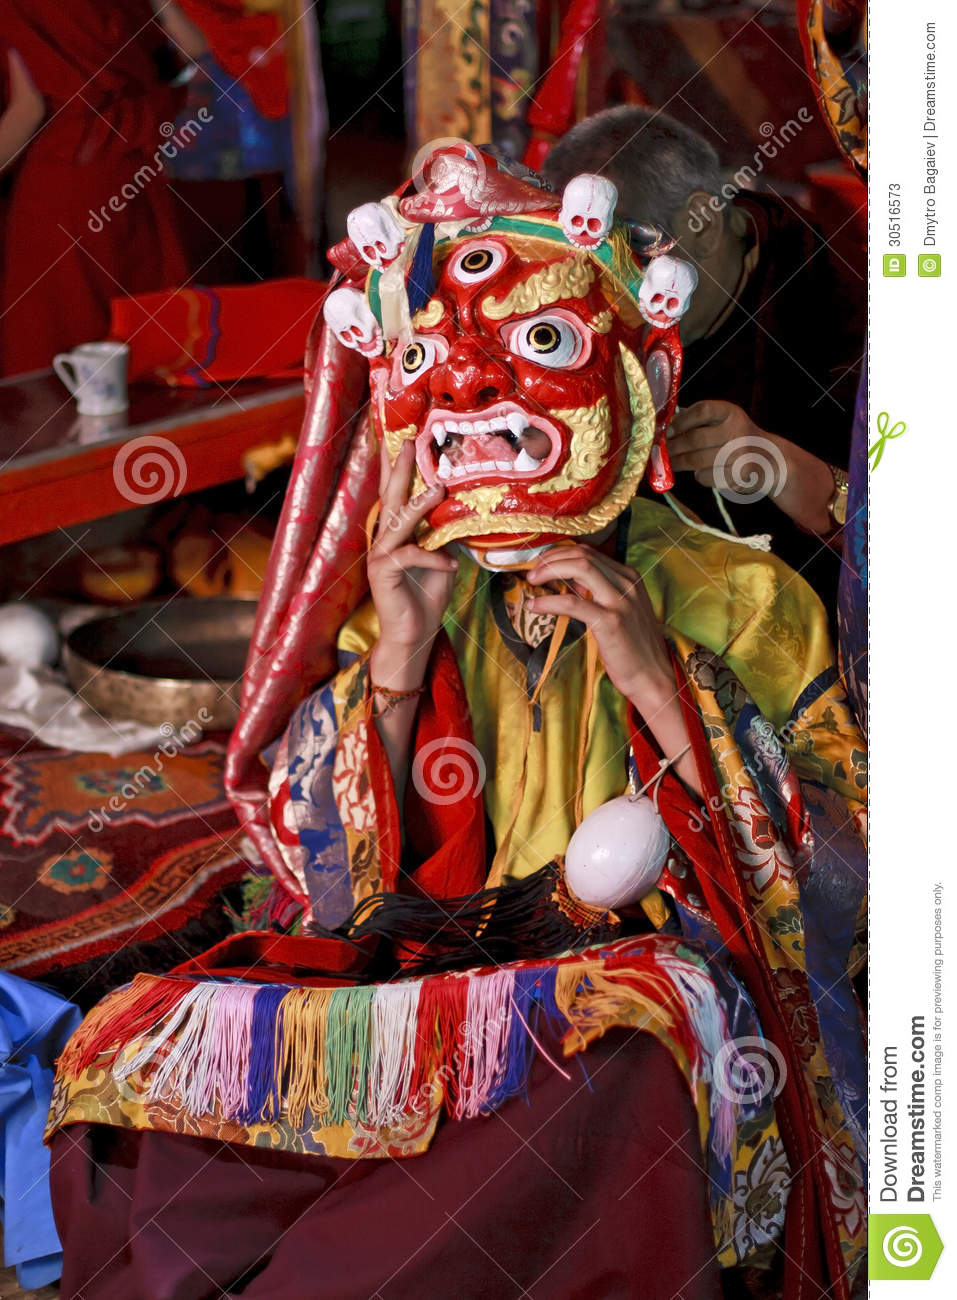 afe62961c Editorial Stock Photo. Monk dresses up for ritual dance at buddhist festi